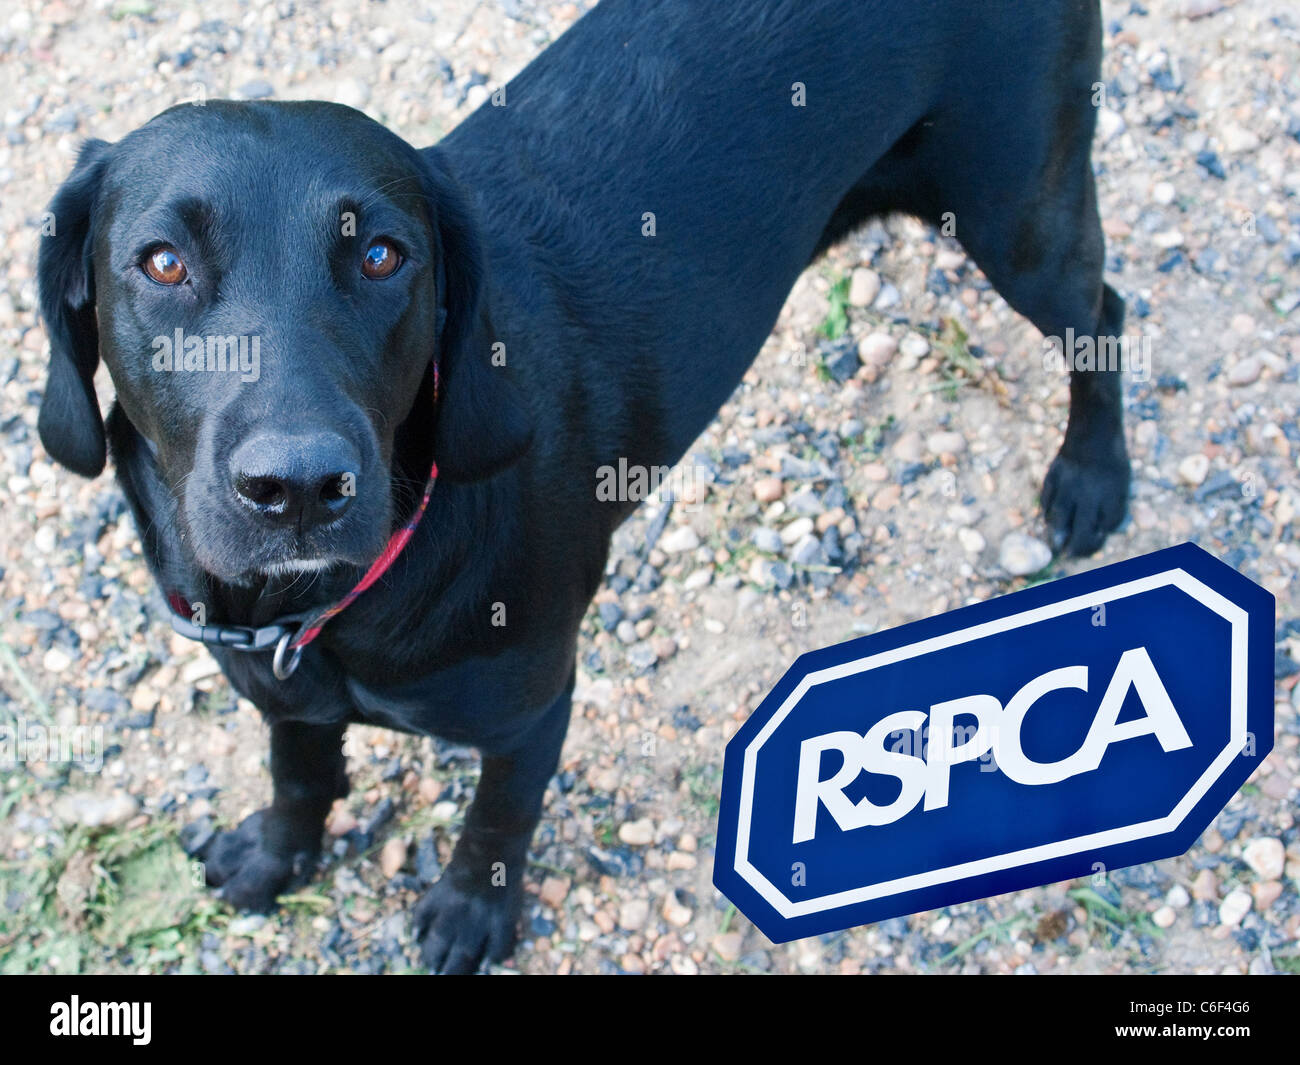 RSPCA logo, dog close up - cut outs placed together., England, UK. View from above top. Close up (macro) - Stock Image